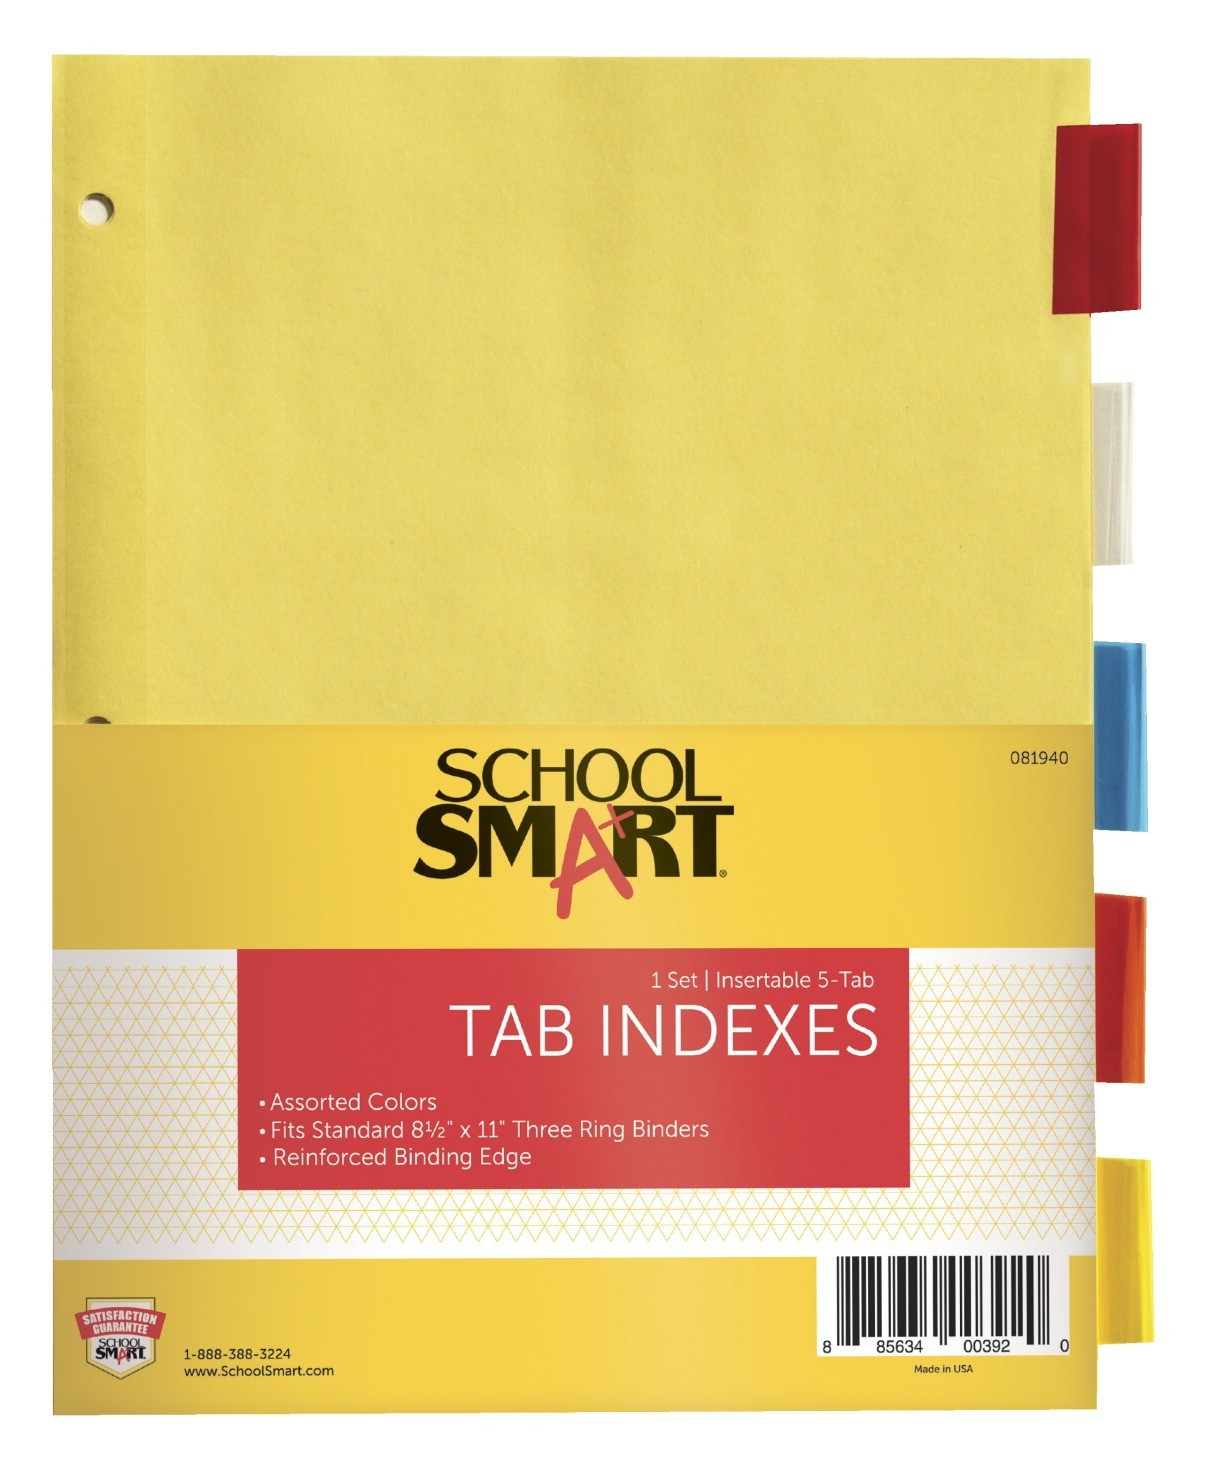 Insertable Tab Indexes, 8-1/2 X 11, 3-Hole Punch, Assorted Colors, 5/Pkg